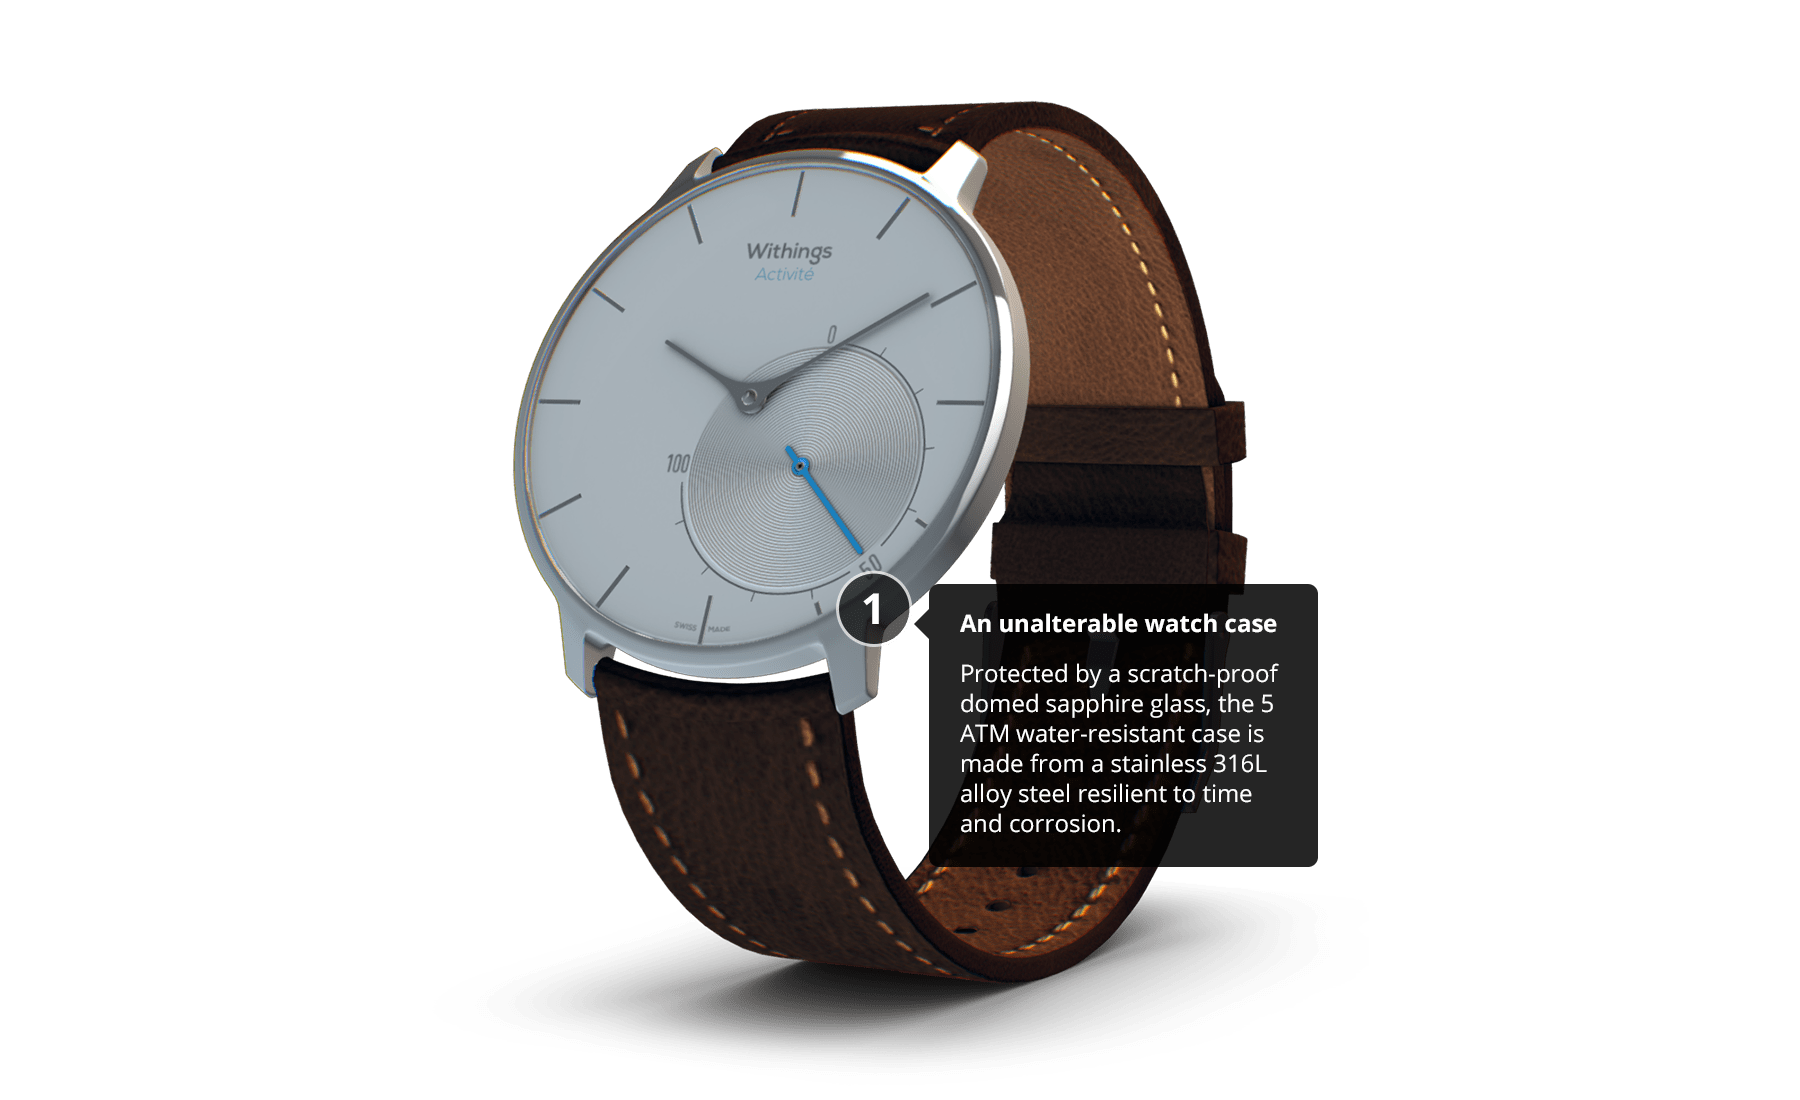 withings viewer